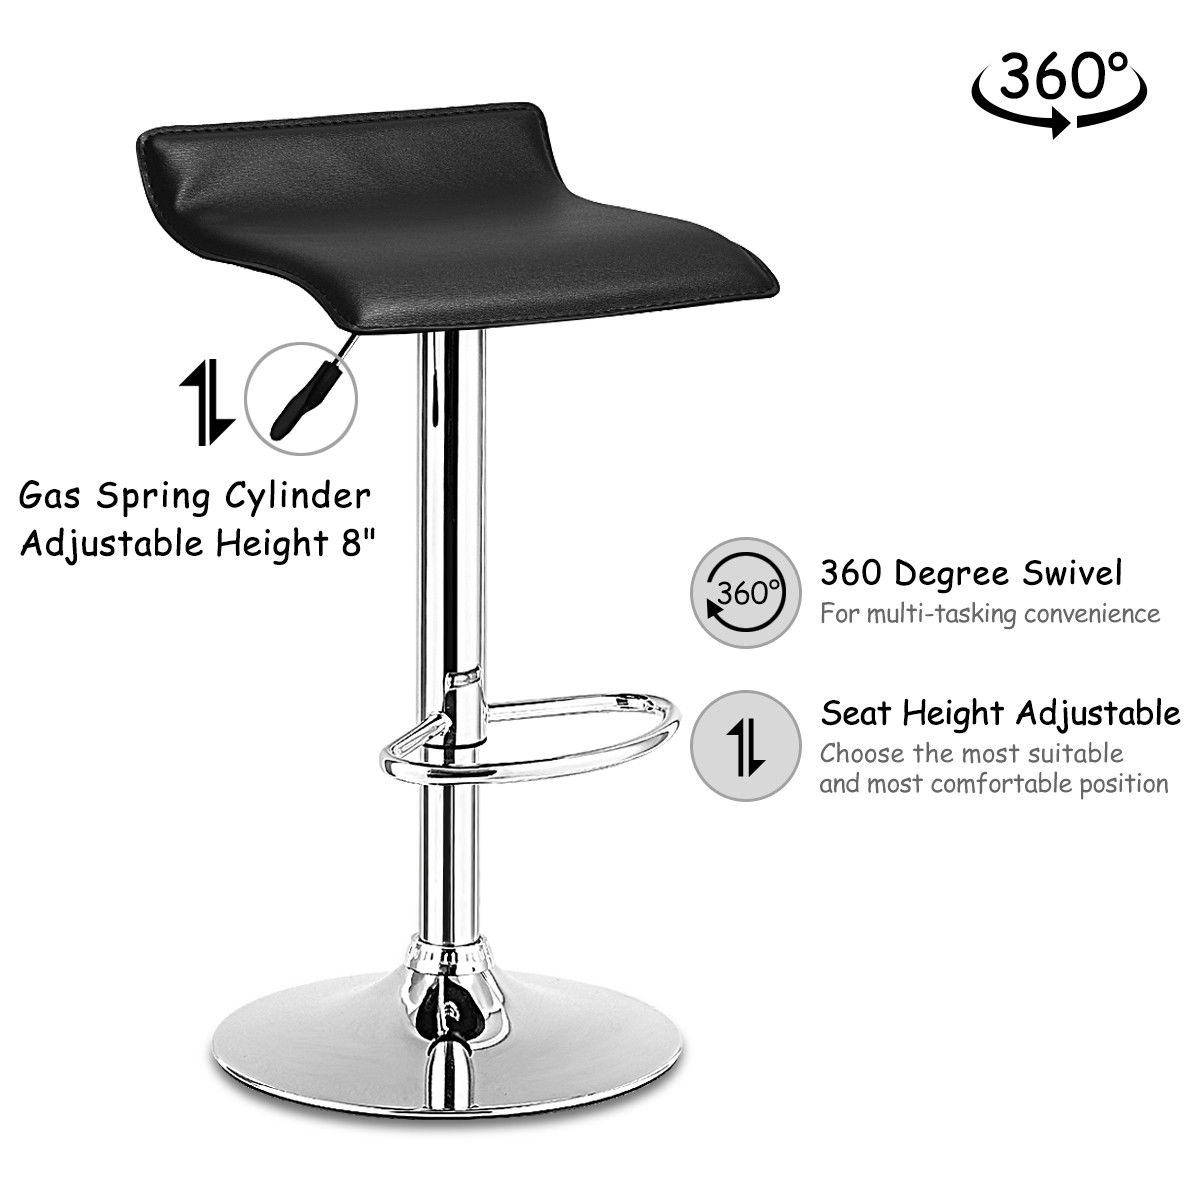 Incredible Costway Set Of 2 Swivel Bar Stools Adjustable Pu Leather Backless Dining Chair Black Pabps2019 Chair Design Images Pabps2019Com